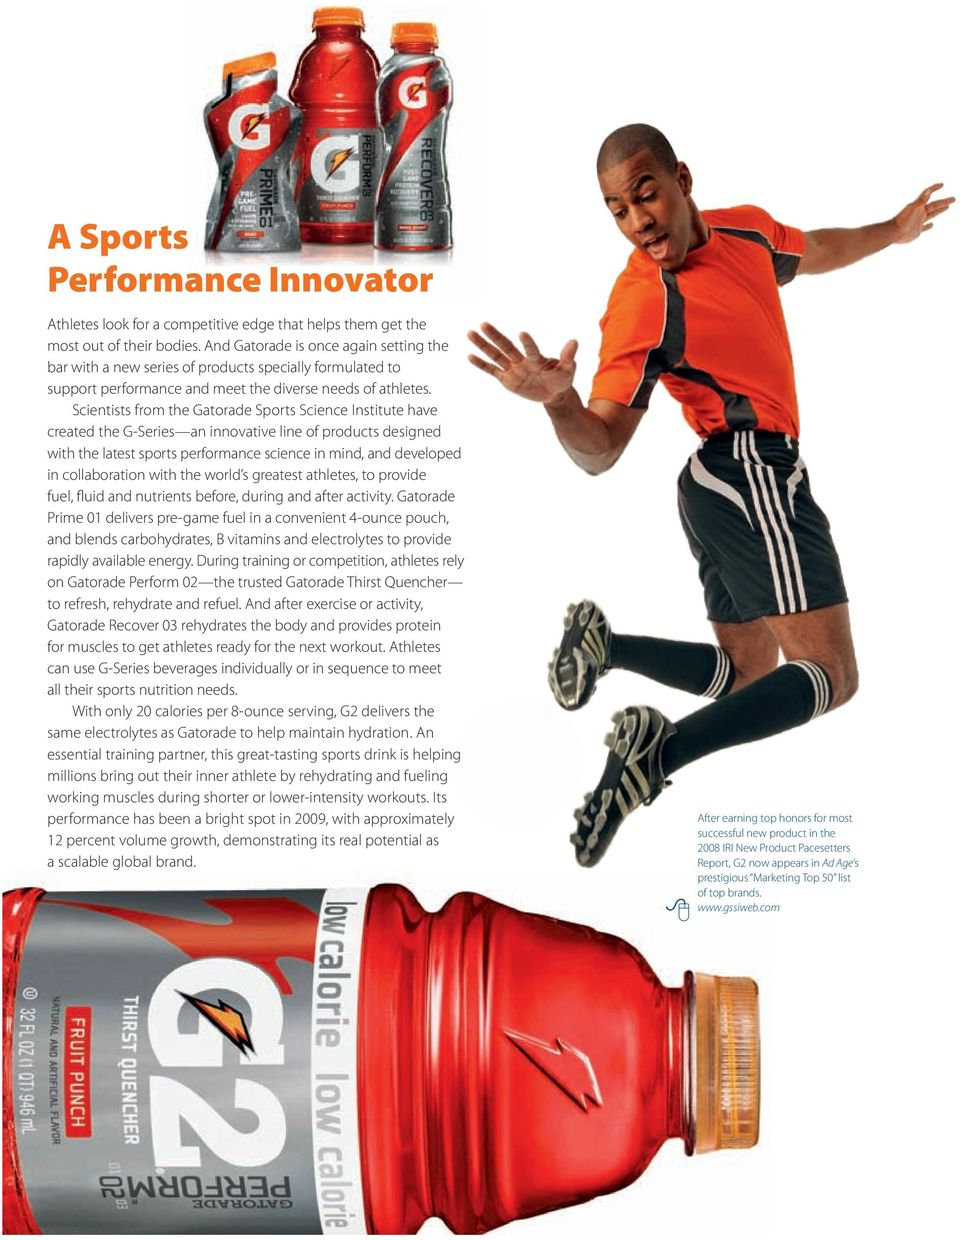 Scientists from the Gatorade Sports Science Institute have created the G-Series an innovative line of products designed with the latest sports performance science in mind, and developed in